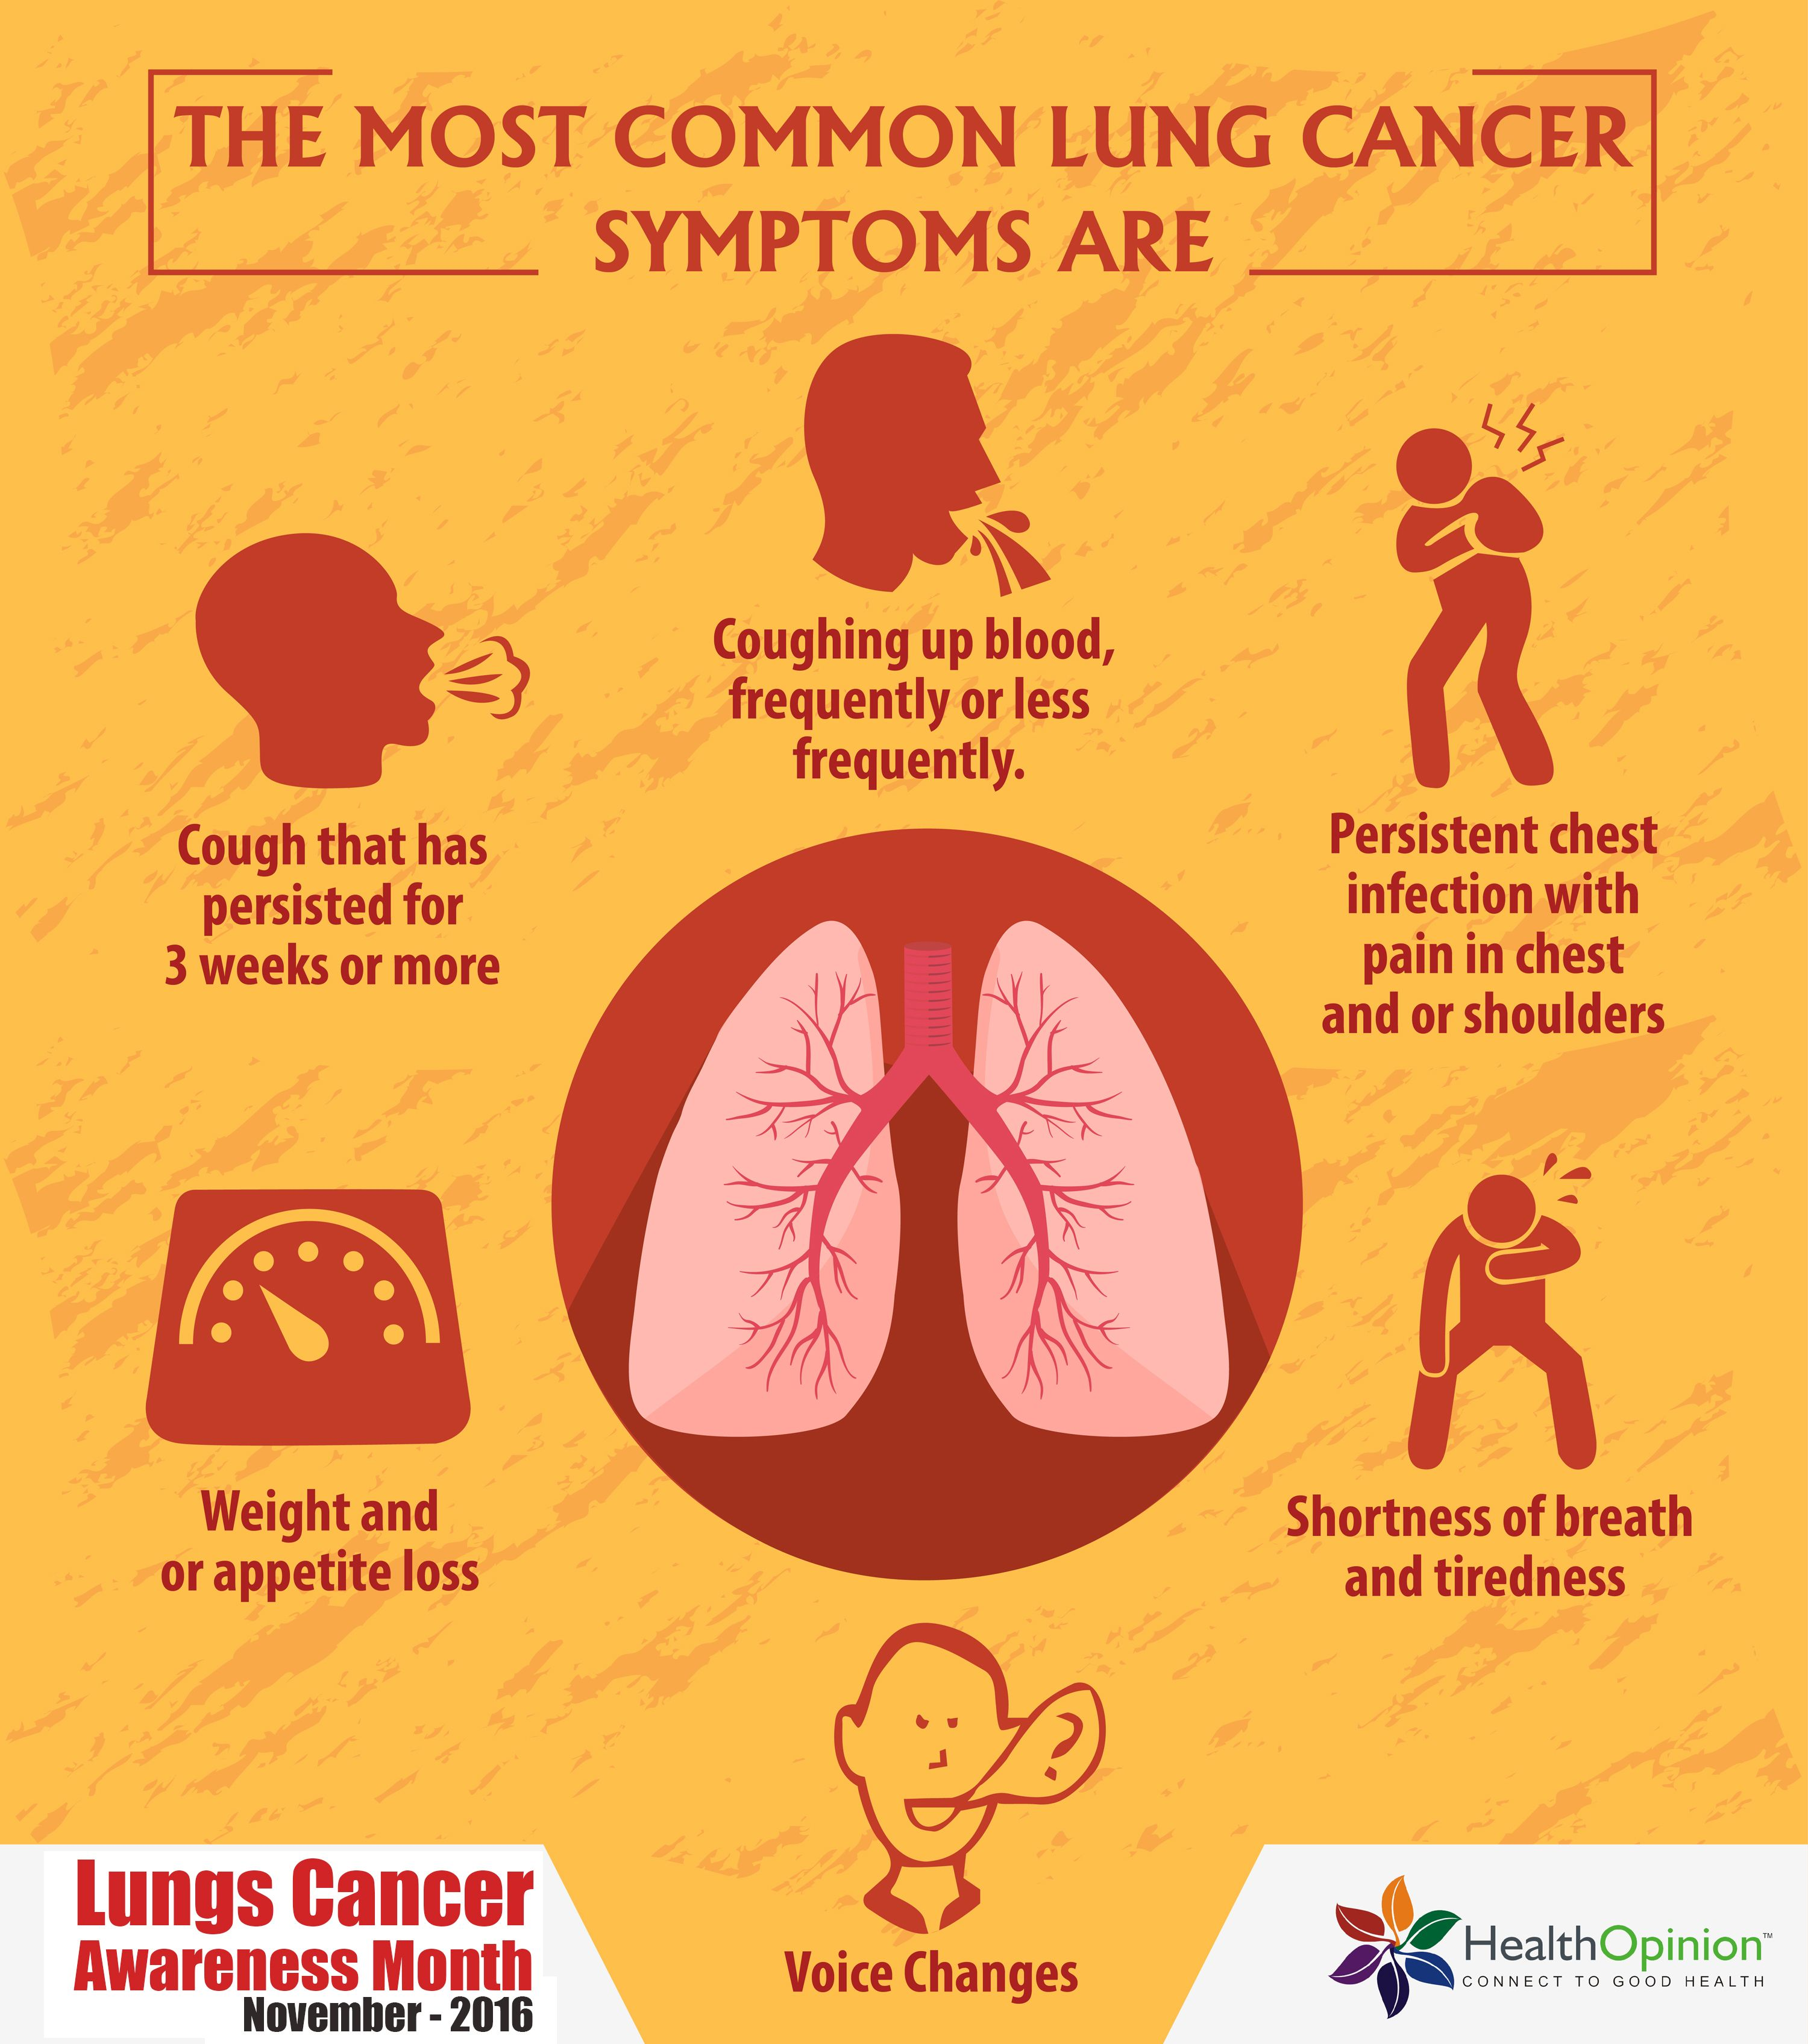 the prevention and treatment of the deadly lung cancer Lung cancer is deadly in both men and women however, you can greatly reduce your risk for lung cancer by not smoking, eating healthy, exercising regularly and limiting your exposure to environmental factors and second hand smoke.